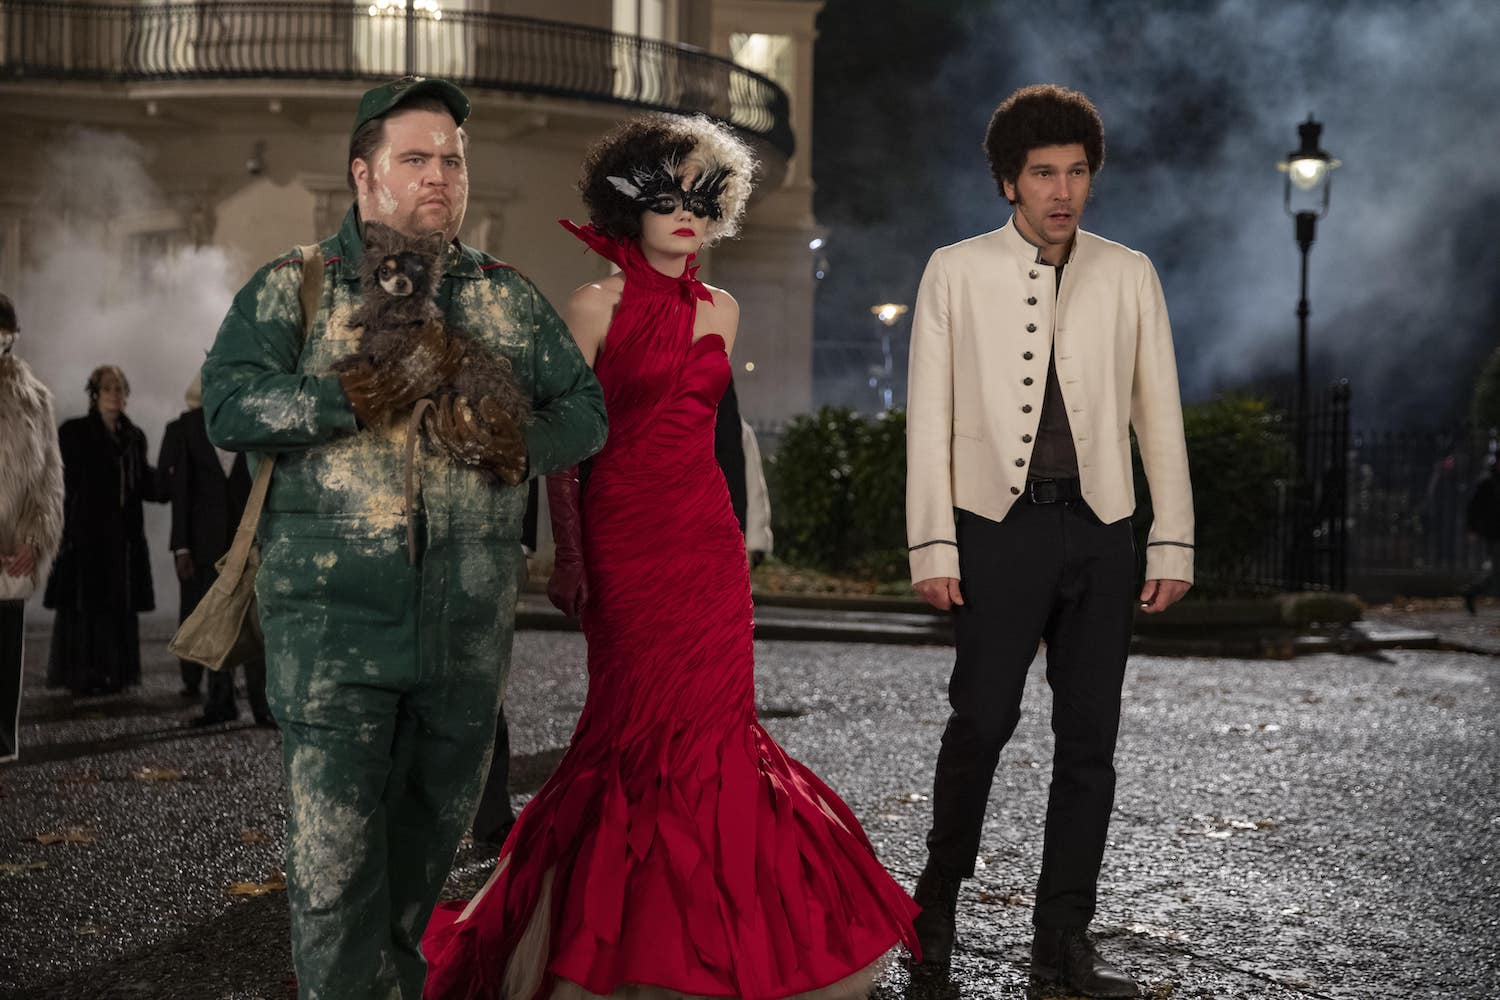 (L-R): Paul Walter Hauser as Horace, Emma Stone as Cruella and Joel Fry as Jasper in Disney's live-action CRUELLA. Photo by Laurie Sparham. © 2021 Disney Enterprises Inc. All Rights Reserved.